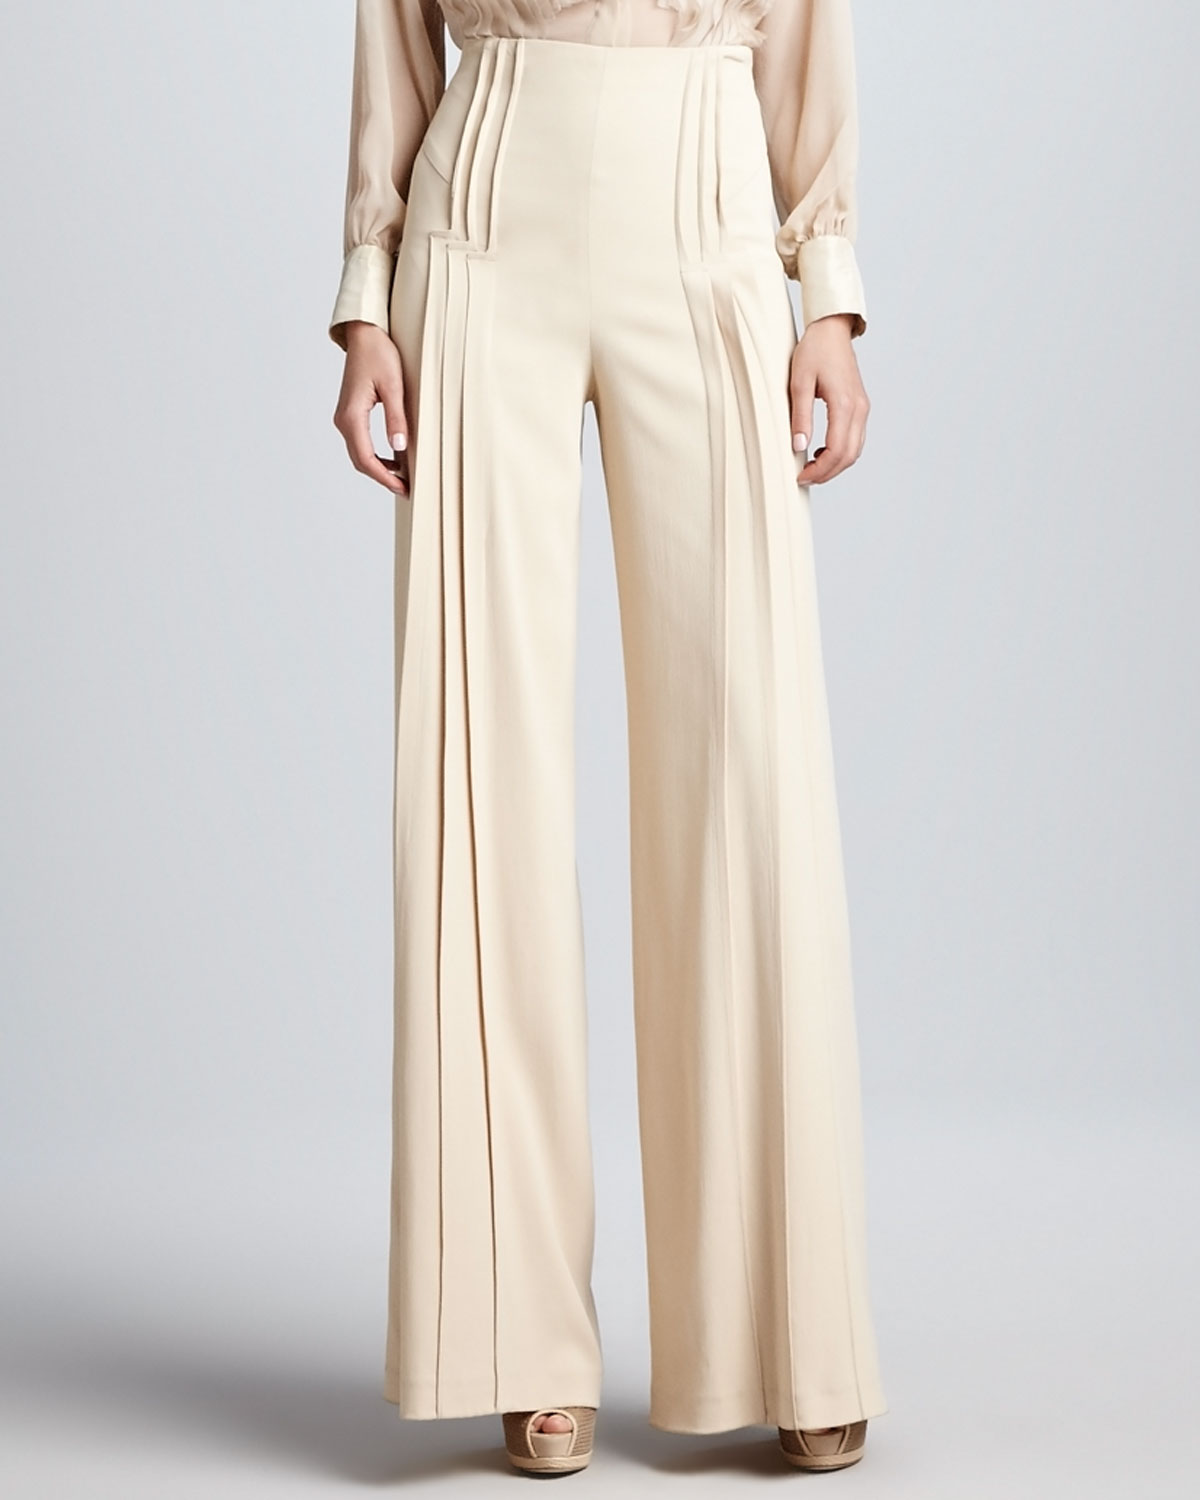 Shop Women's Zac Posen Pants from $298 | Lyst